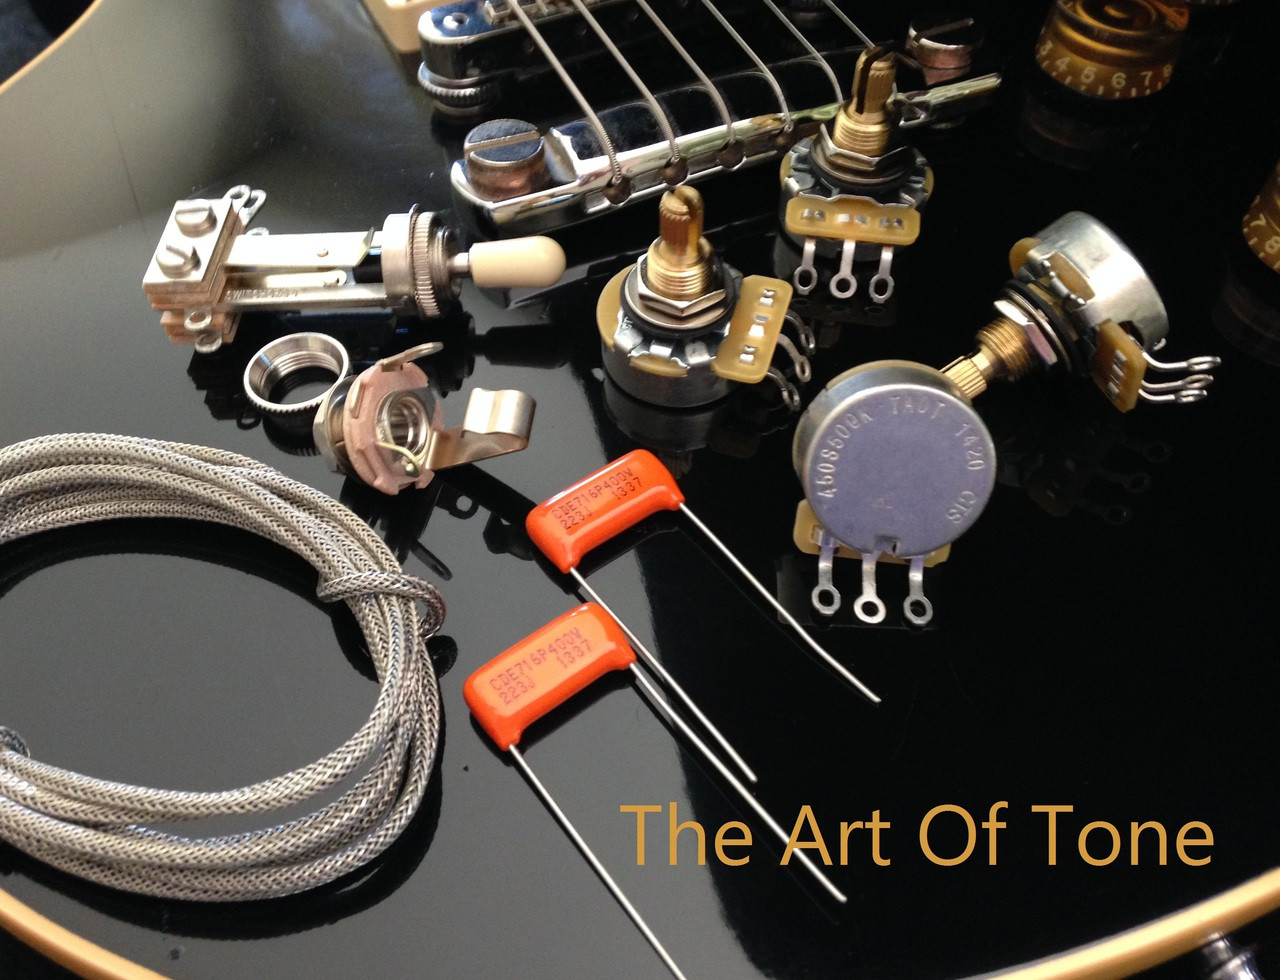 deluxe short shaft wiring kit for gibson usa les paul guitars rh theartoftone com gibson wiring color code gibson wiring kit